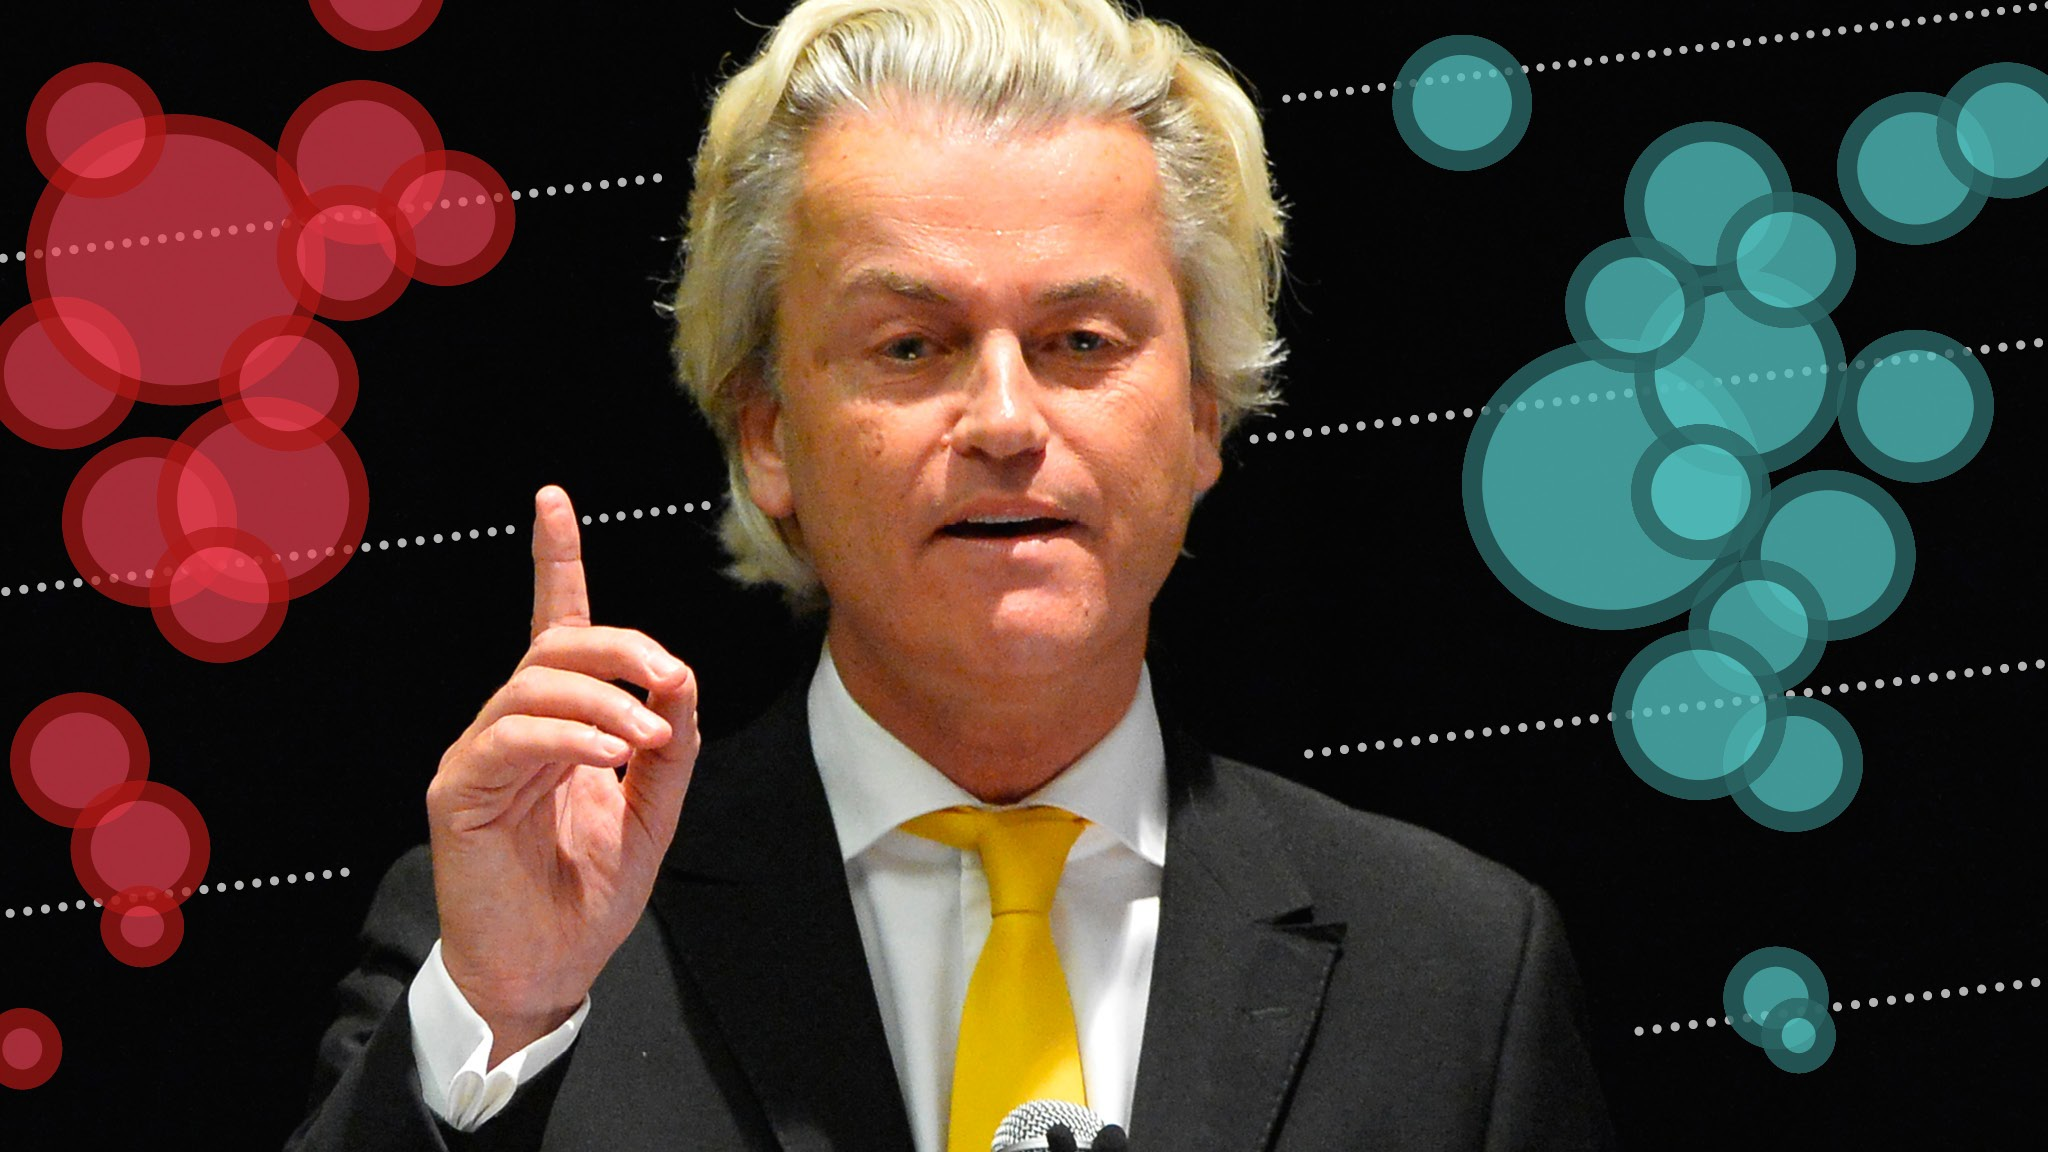 Image result for How education level is the biggest predictor of support for Geert Wilders